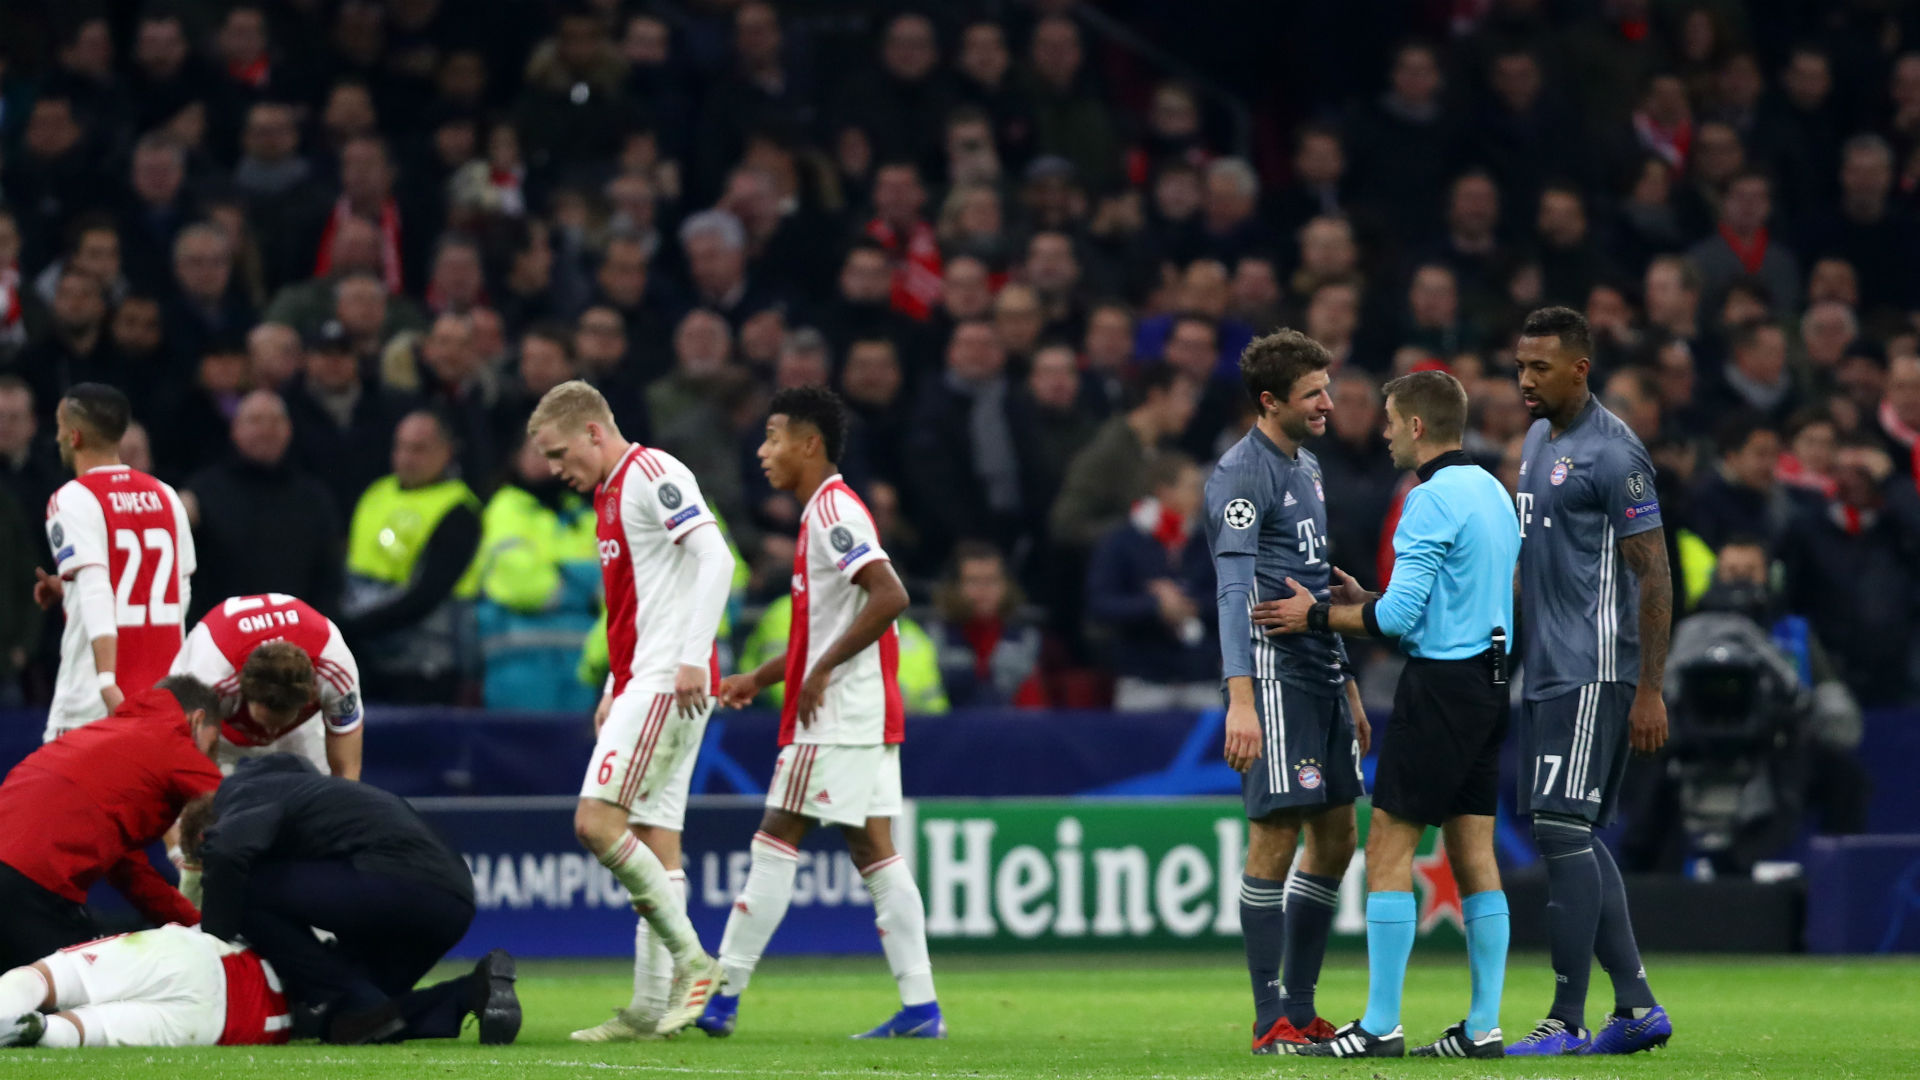 Bayern Munich's Thomas Muller was sent off on Wednesday for a high challenge on Nicolas Tagliafico, whom he has apologised to.